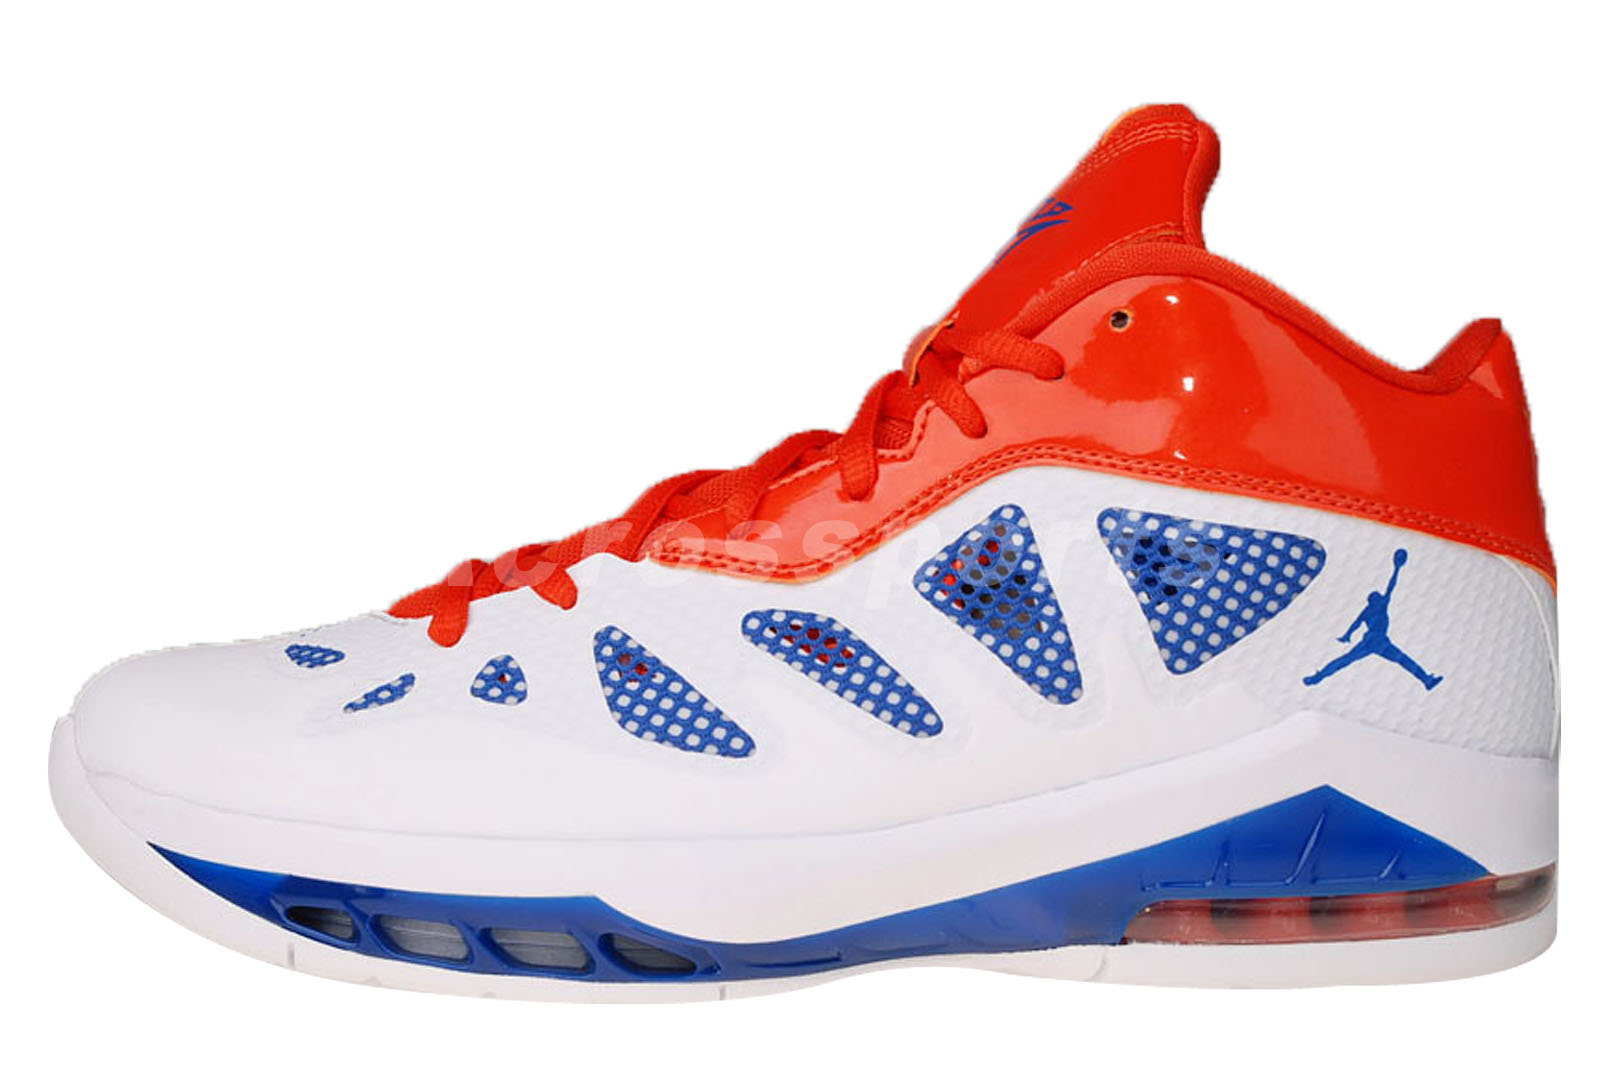 best service e2169 61814 nike air jordan melo m8 advance knicks away